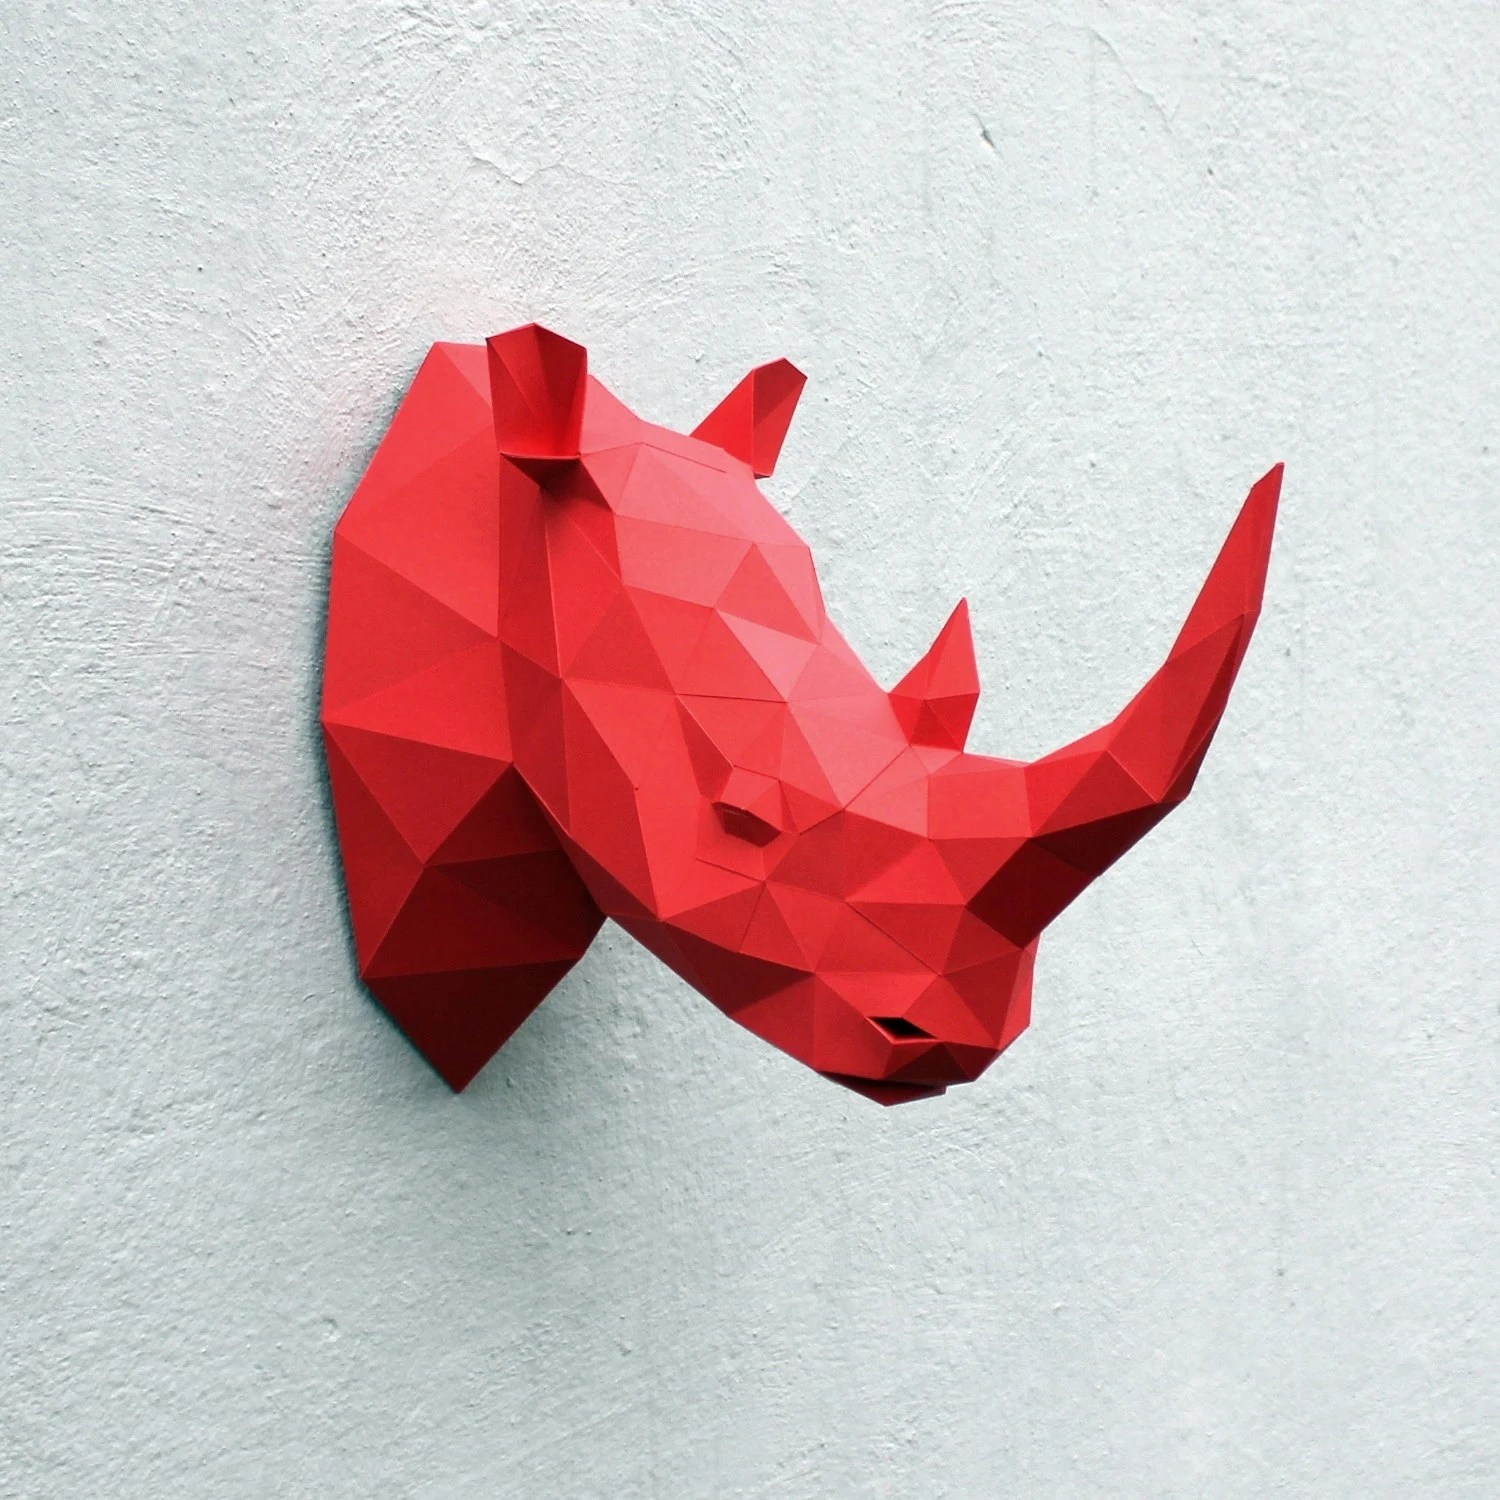 Papercraft Rhino Head Printable DIY Template By WastePaperHead